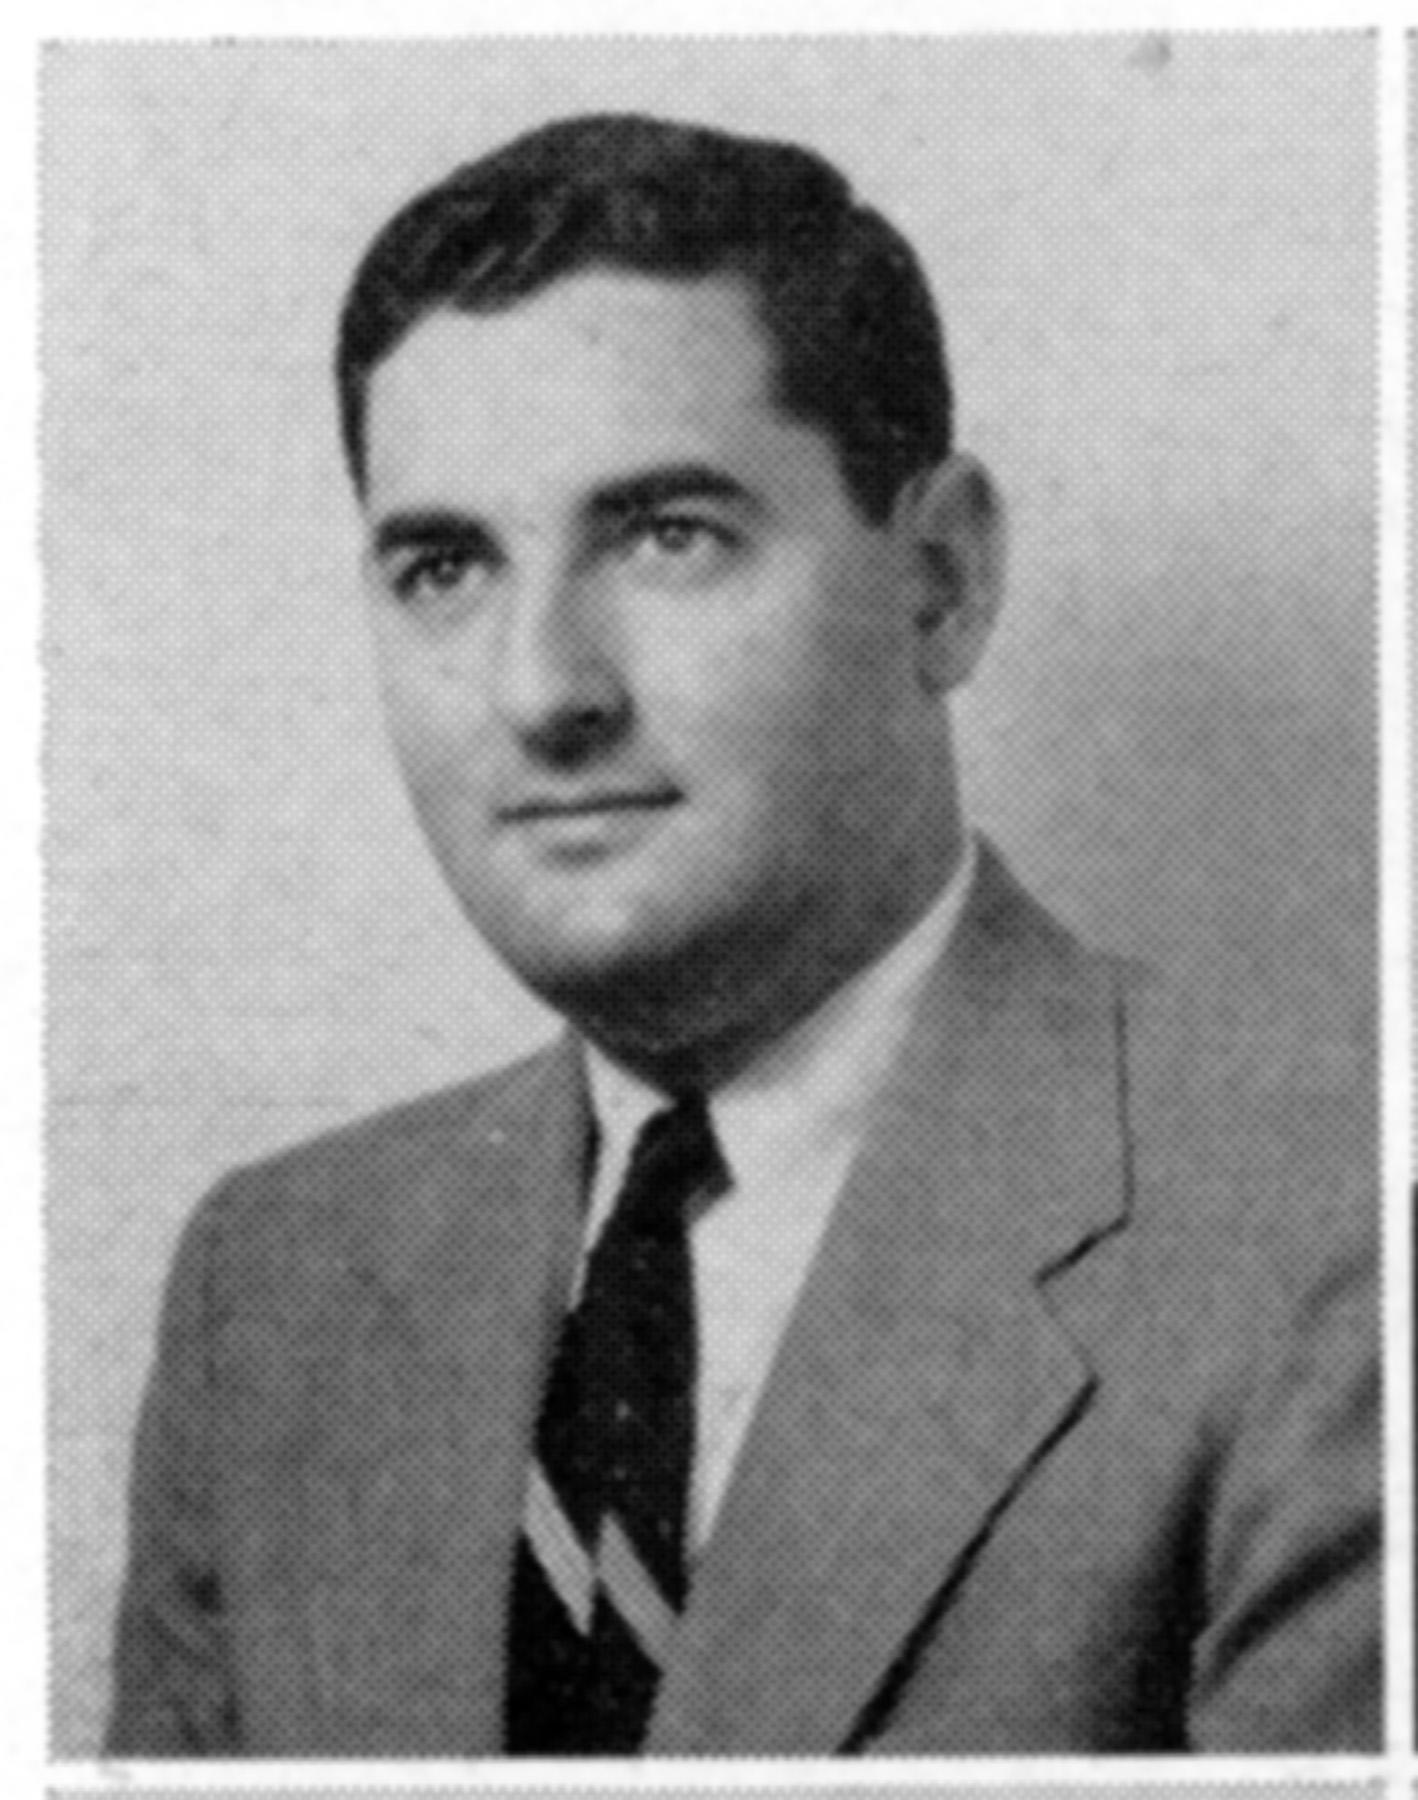 1955 yearbook photo of Arthur Greenbaum